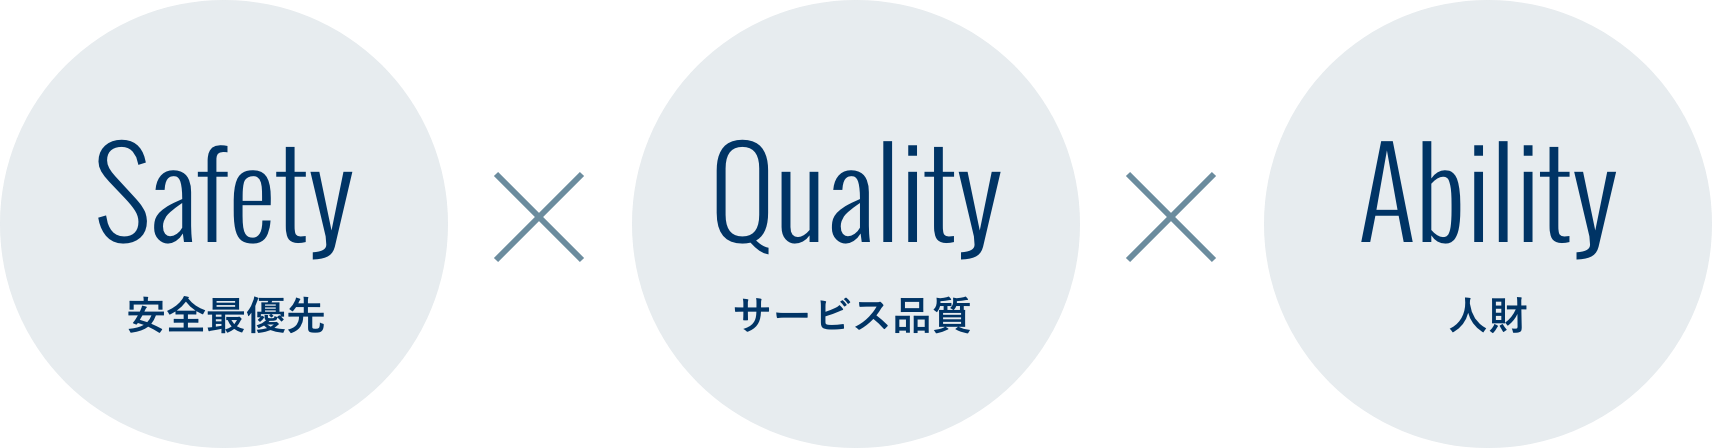 Safety 安全最優先 Quality サービス品質 Ability 人財